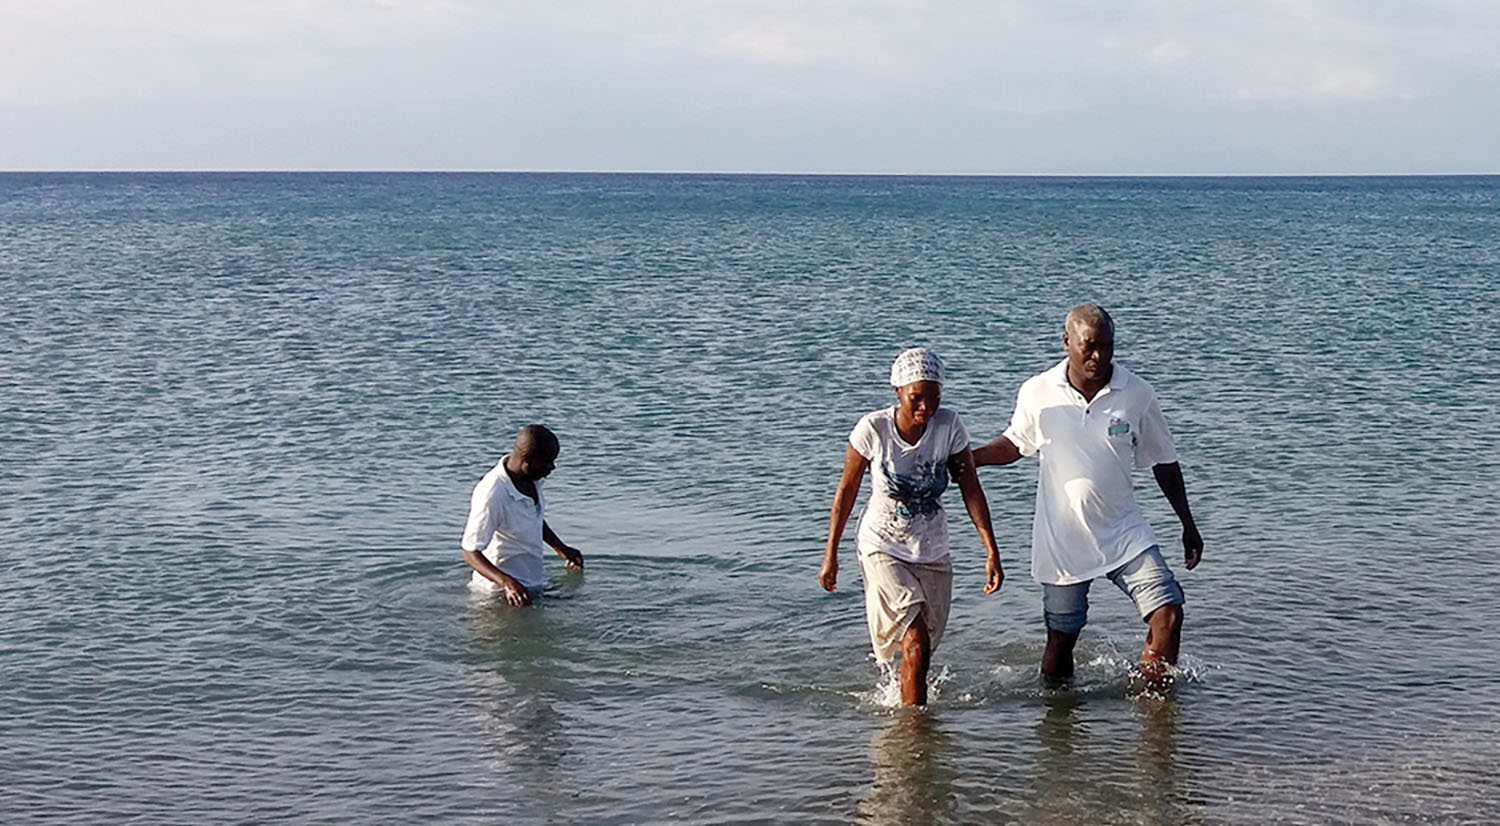 Pastor Jean Panel Louis from our church in Bire, Haiti, hosted a baptism service in Bord-Mer.